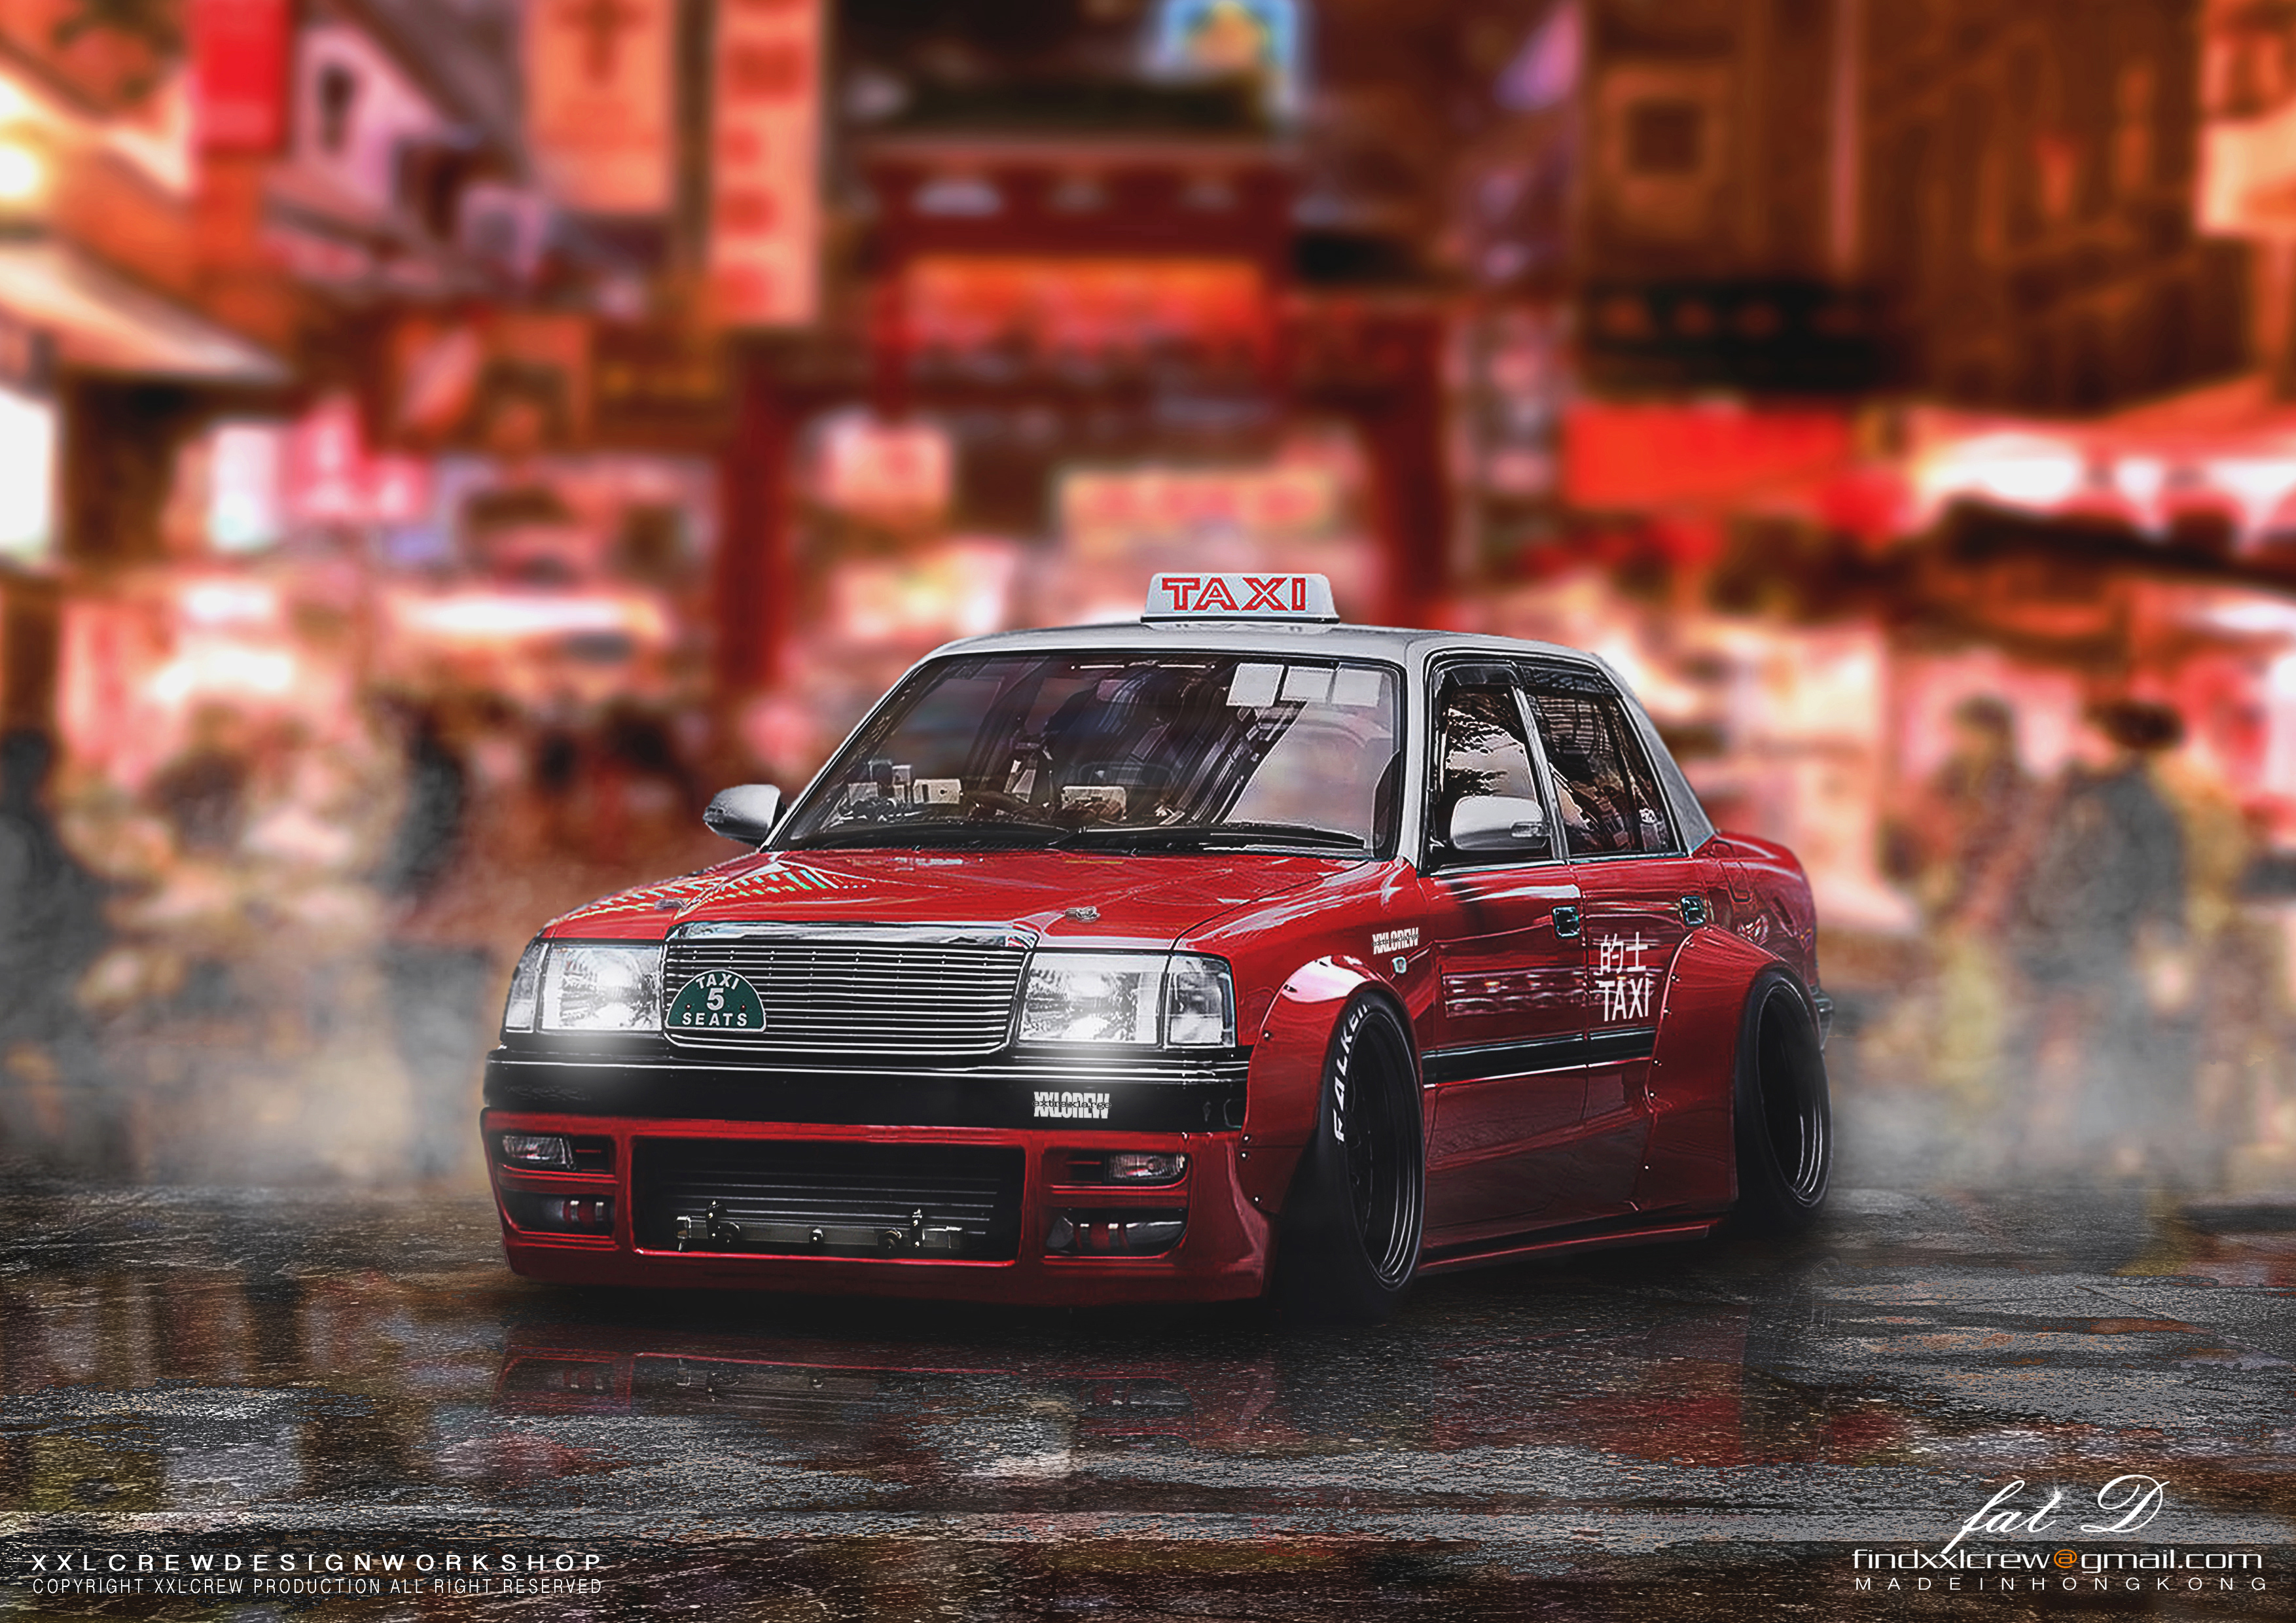 Hong Kong Taxi - Red, Car, Design, Designer, Drift, HQ Photo